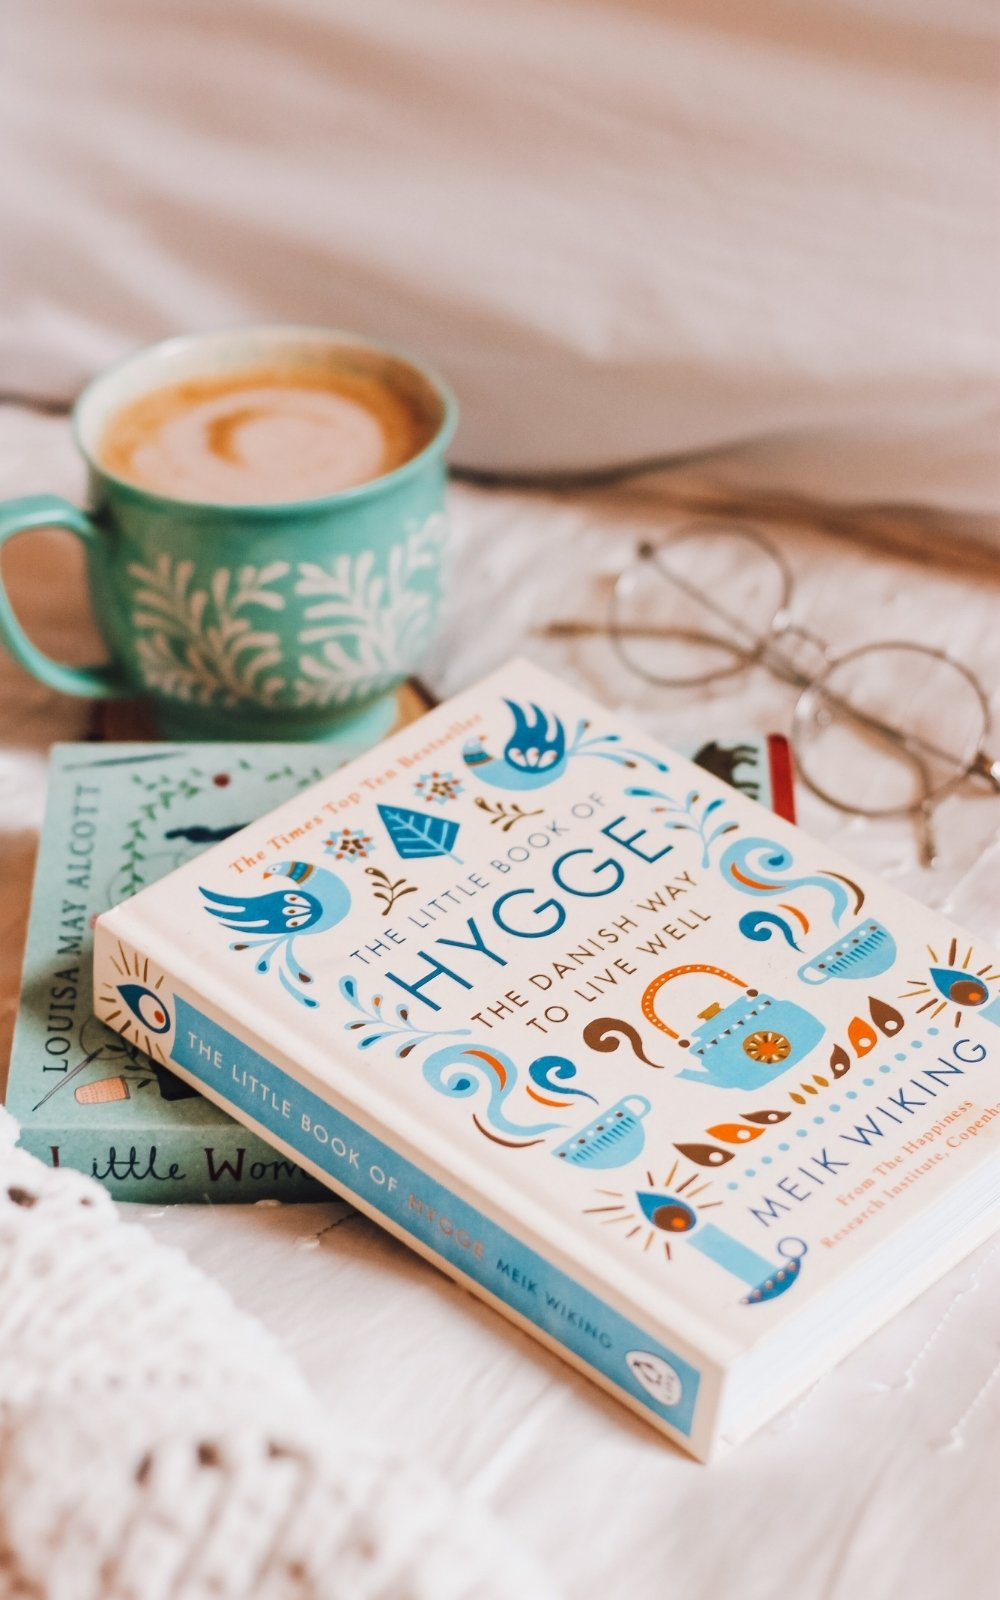 Personal Development Books- Stock Image of Coffee and Book, Hygge by Meik Wiking